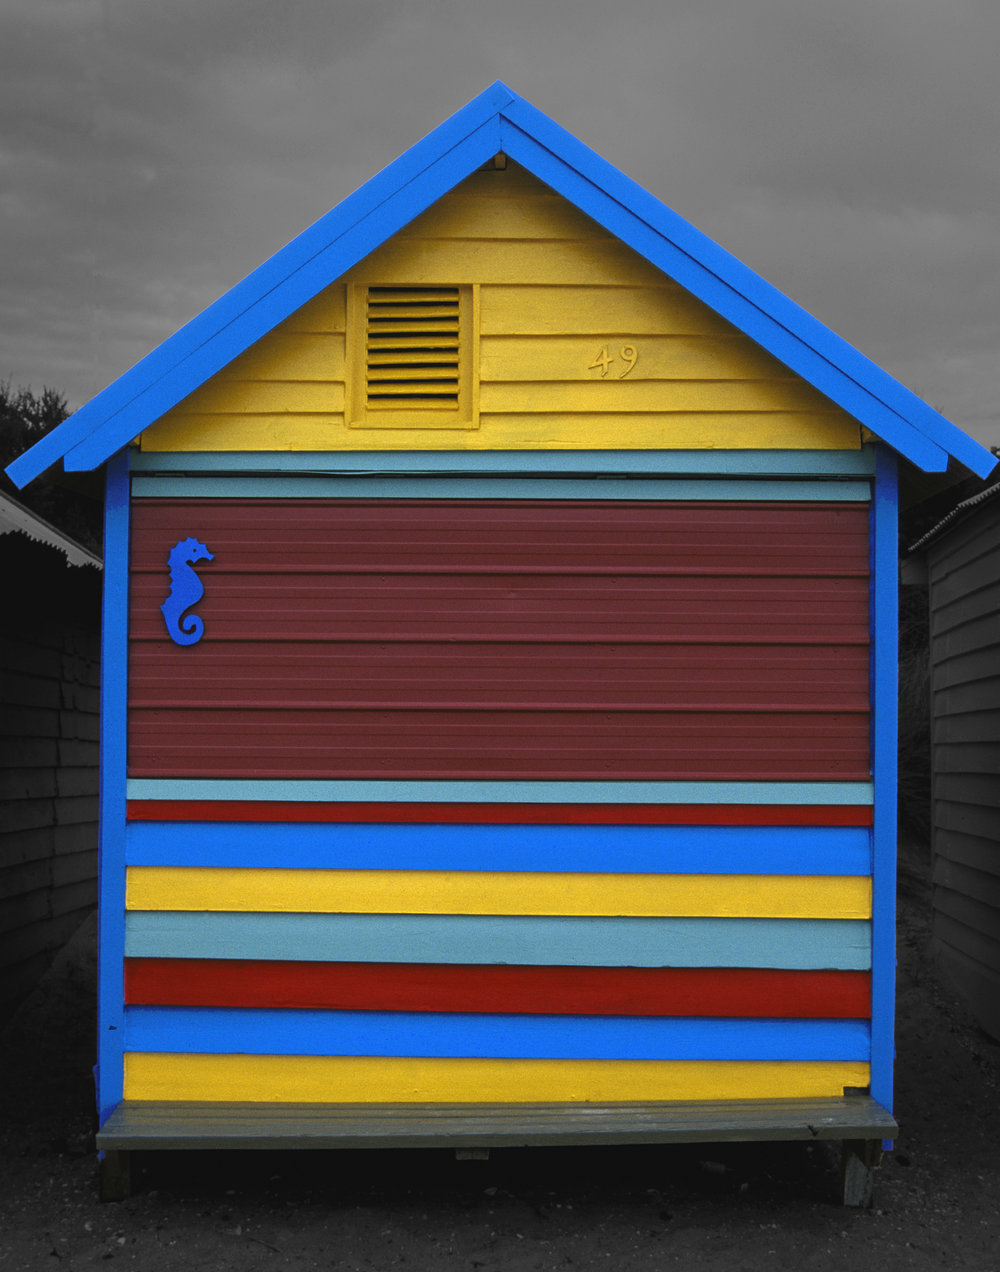 Judy Gelles,  Beach Box No. 49 , 2003  Digital pigment print, 8 x 10 in, edition of 20; 11 x 14 in, edition of 25; 16 x 20 in, edition of 25   Inquire